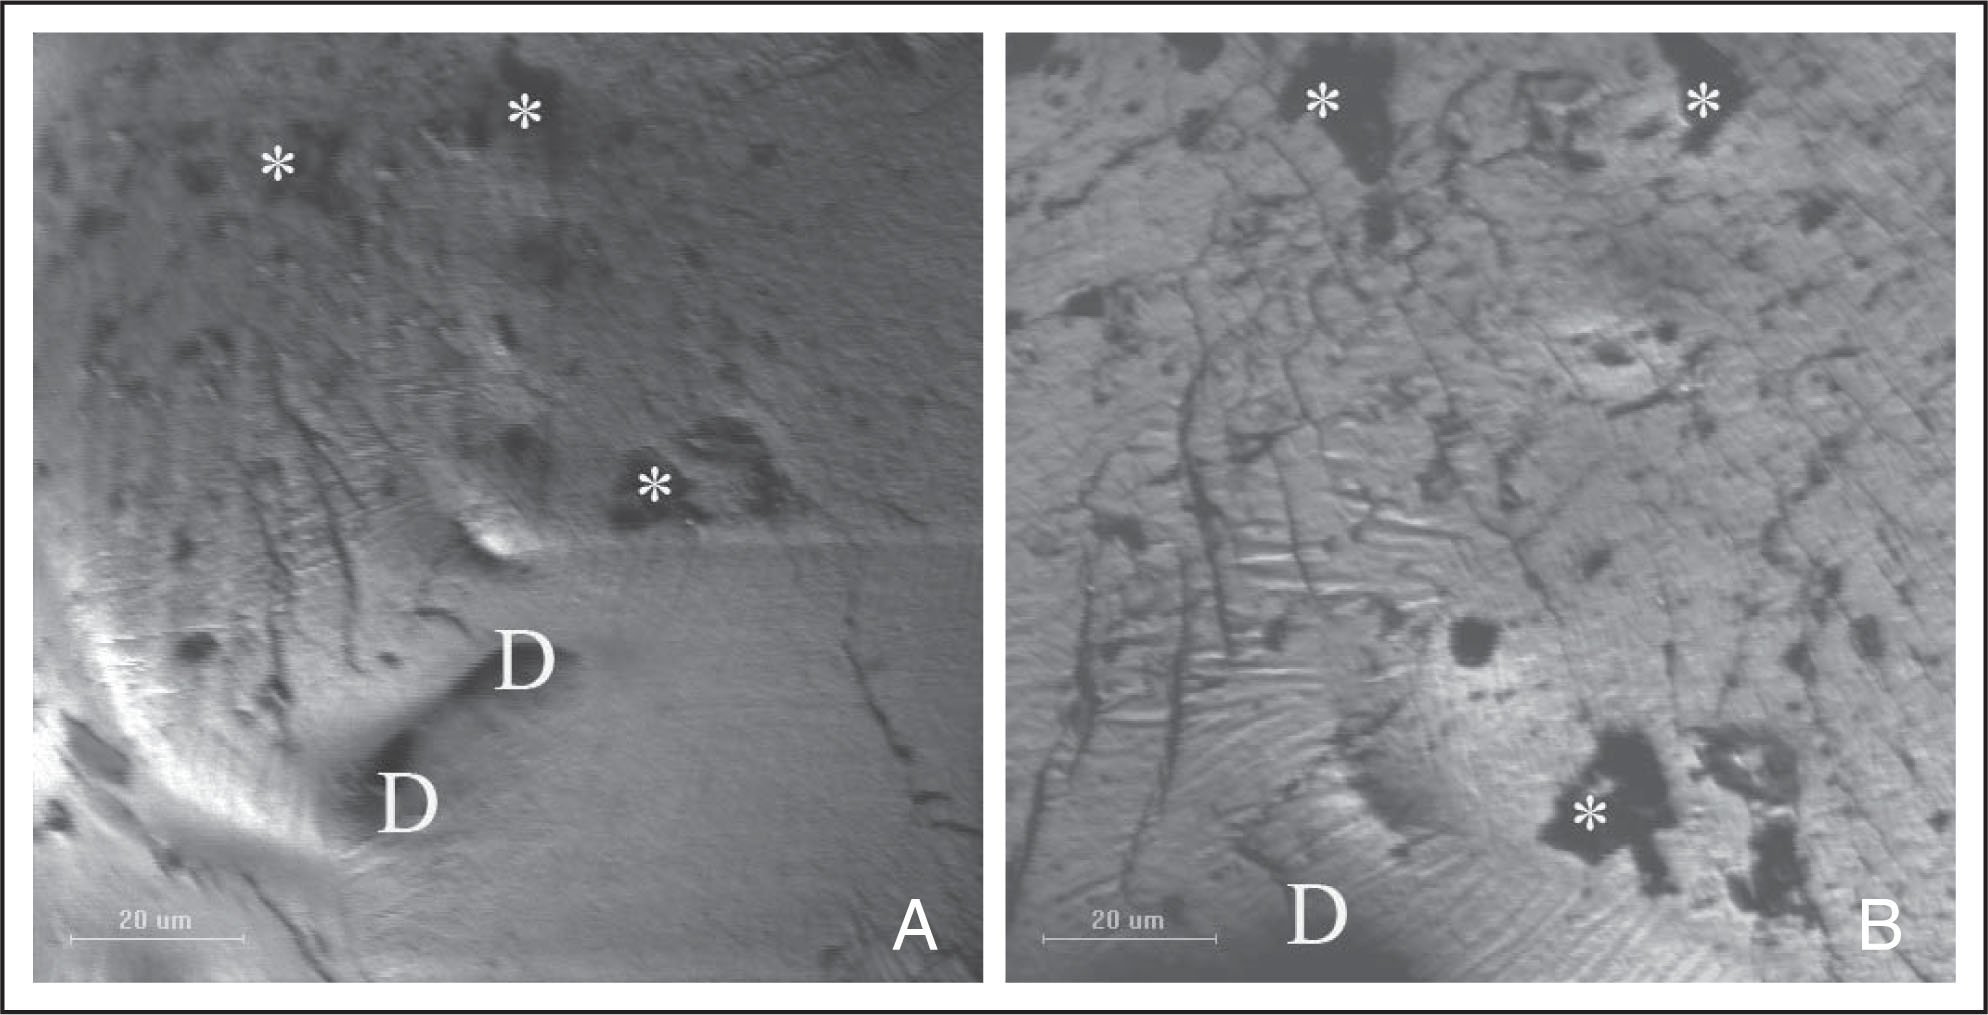 Scanning electron micrographs showing silicone oil droplets (*) and pits and depressions (D) on the posterior surface of the anterior lens capsules in the silicone oil tamponade group.